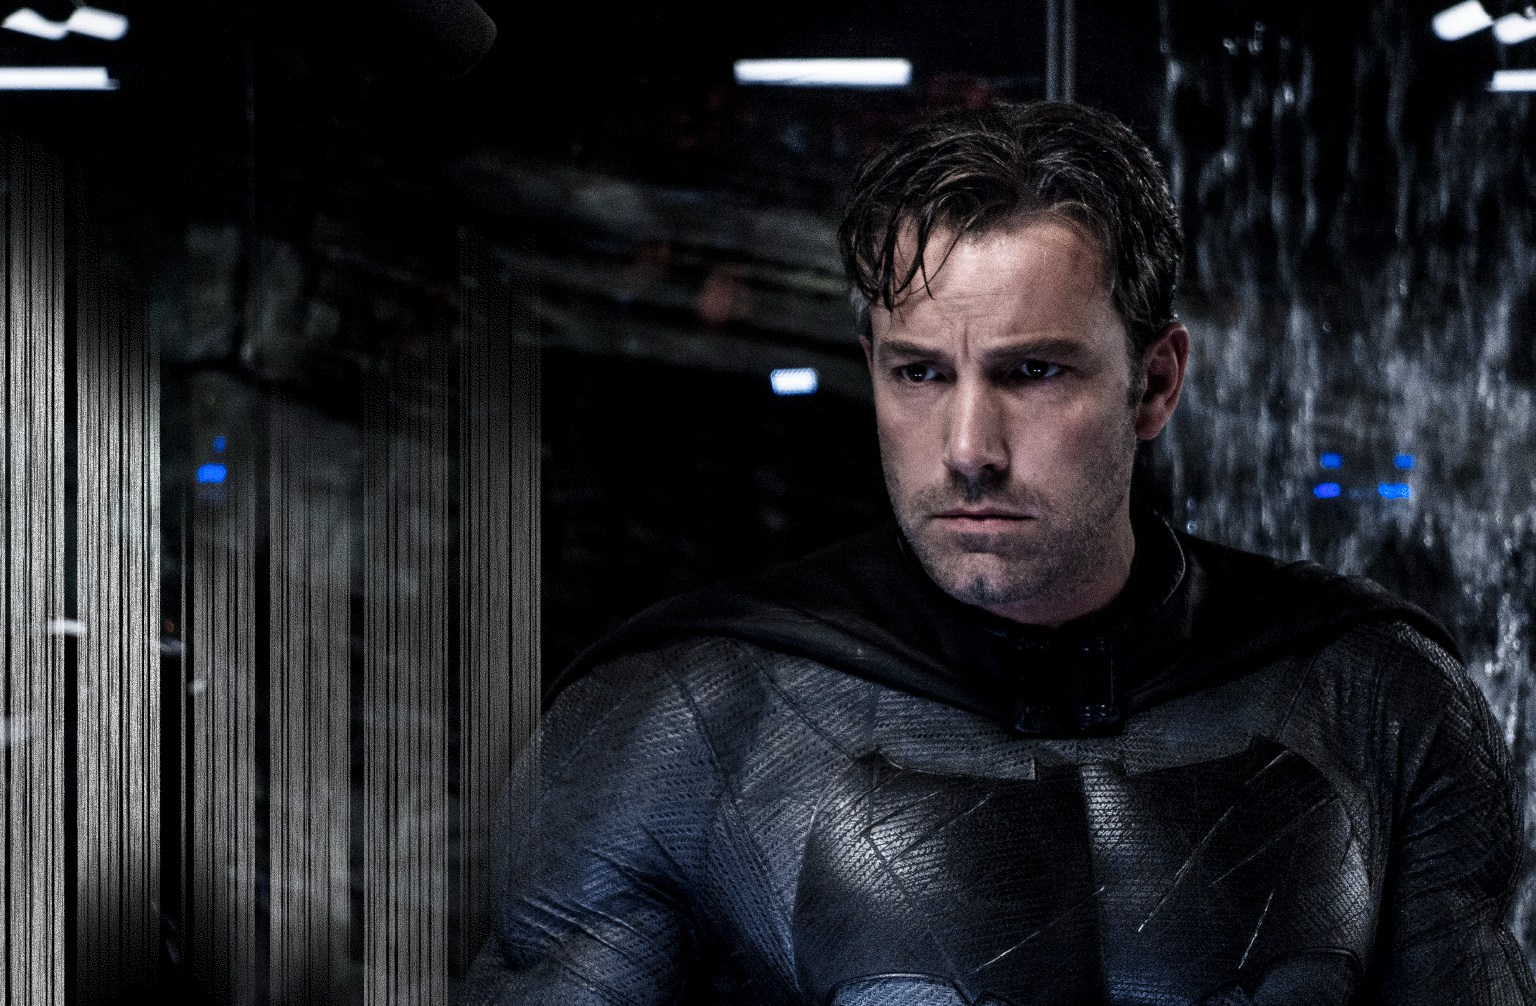 Warner Bros confirma película de Batman con Ben Affleck